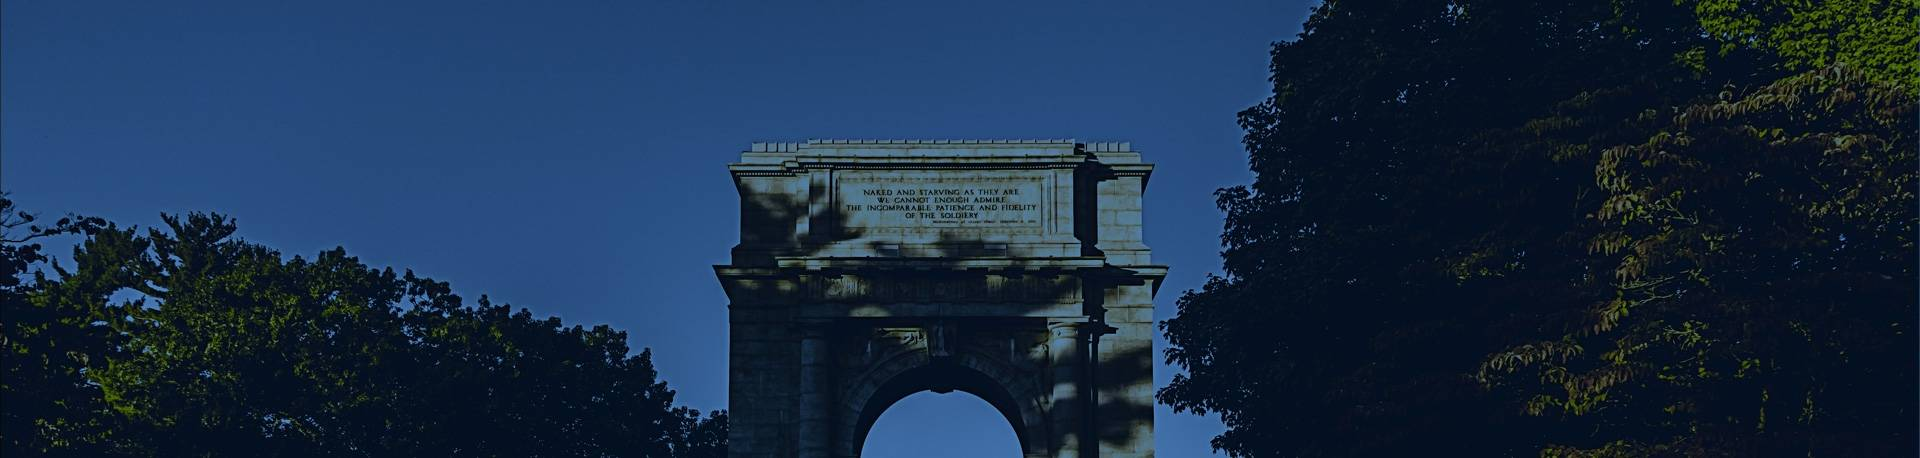 Arch at Valley Forge National Park, 8 miles away from Hibu's King of Prussia office